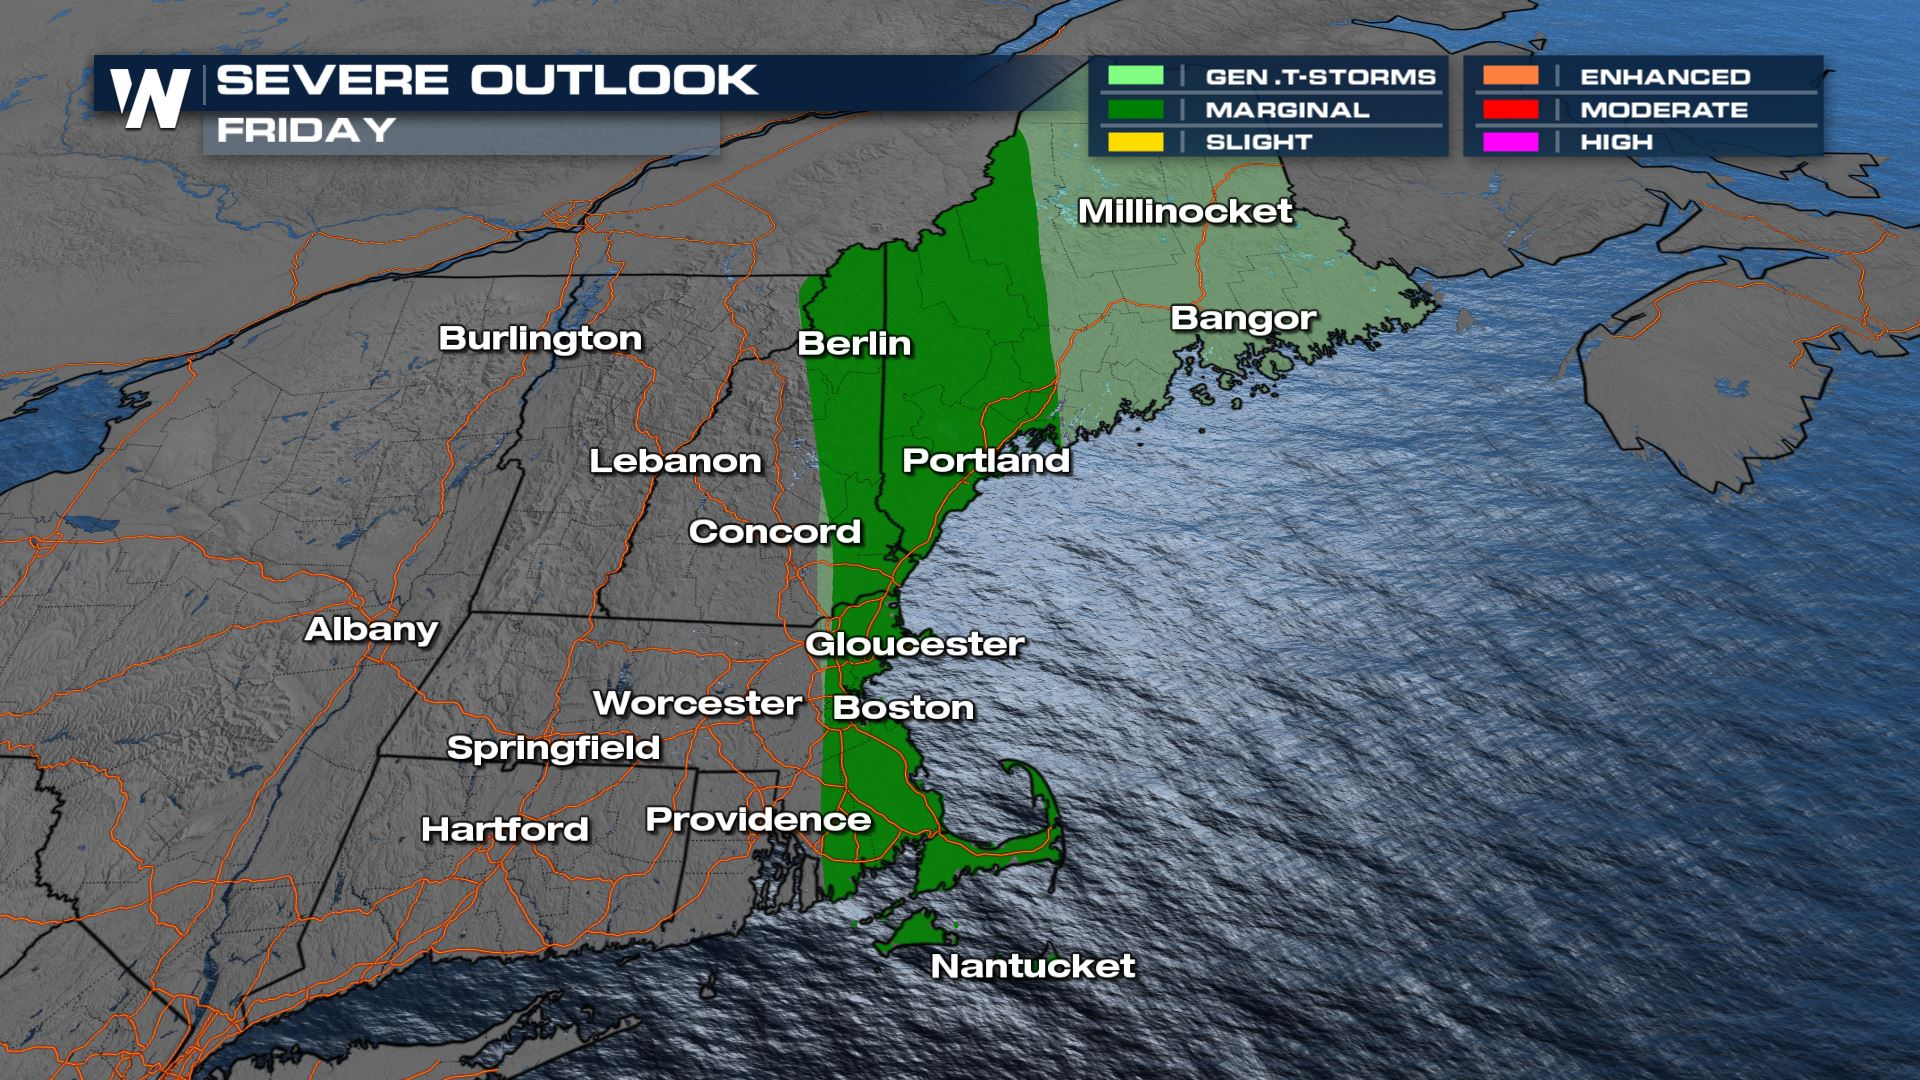 Severe Weather & Flood Threat for the Northeast